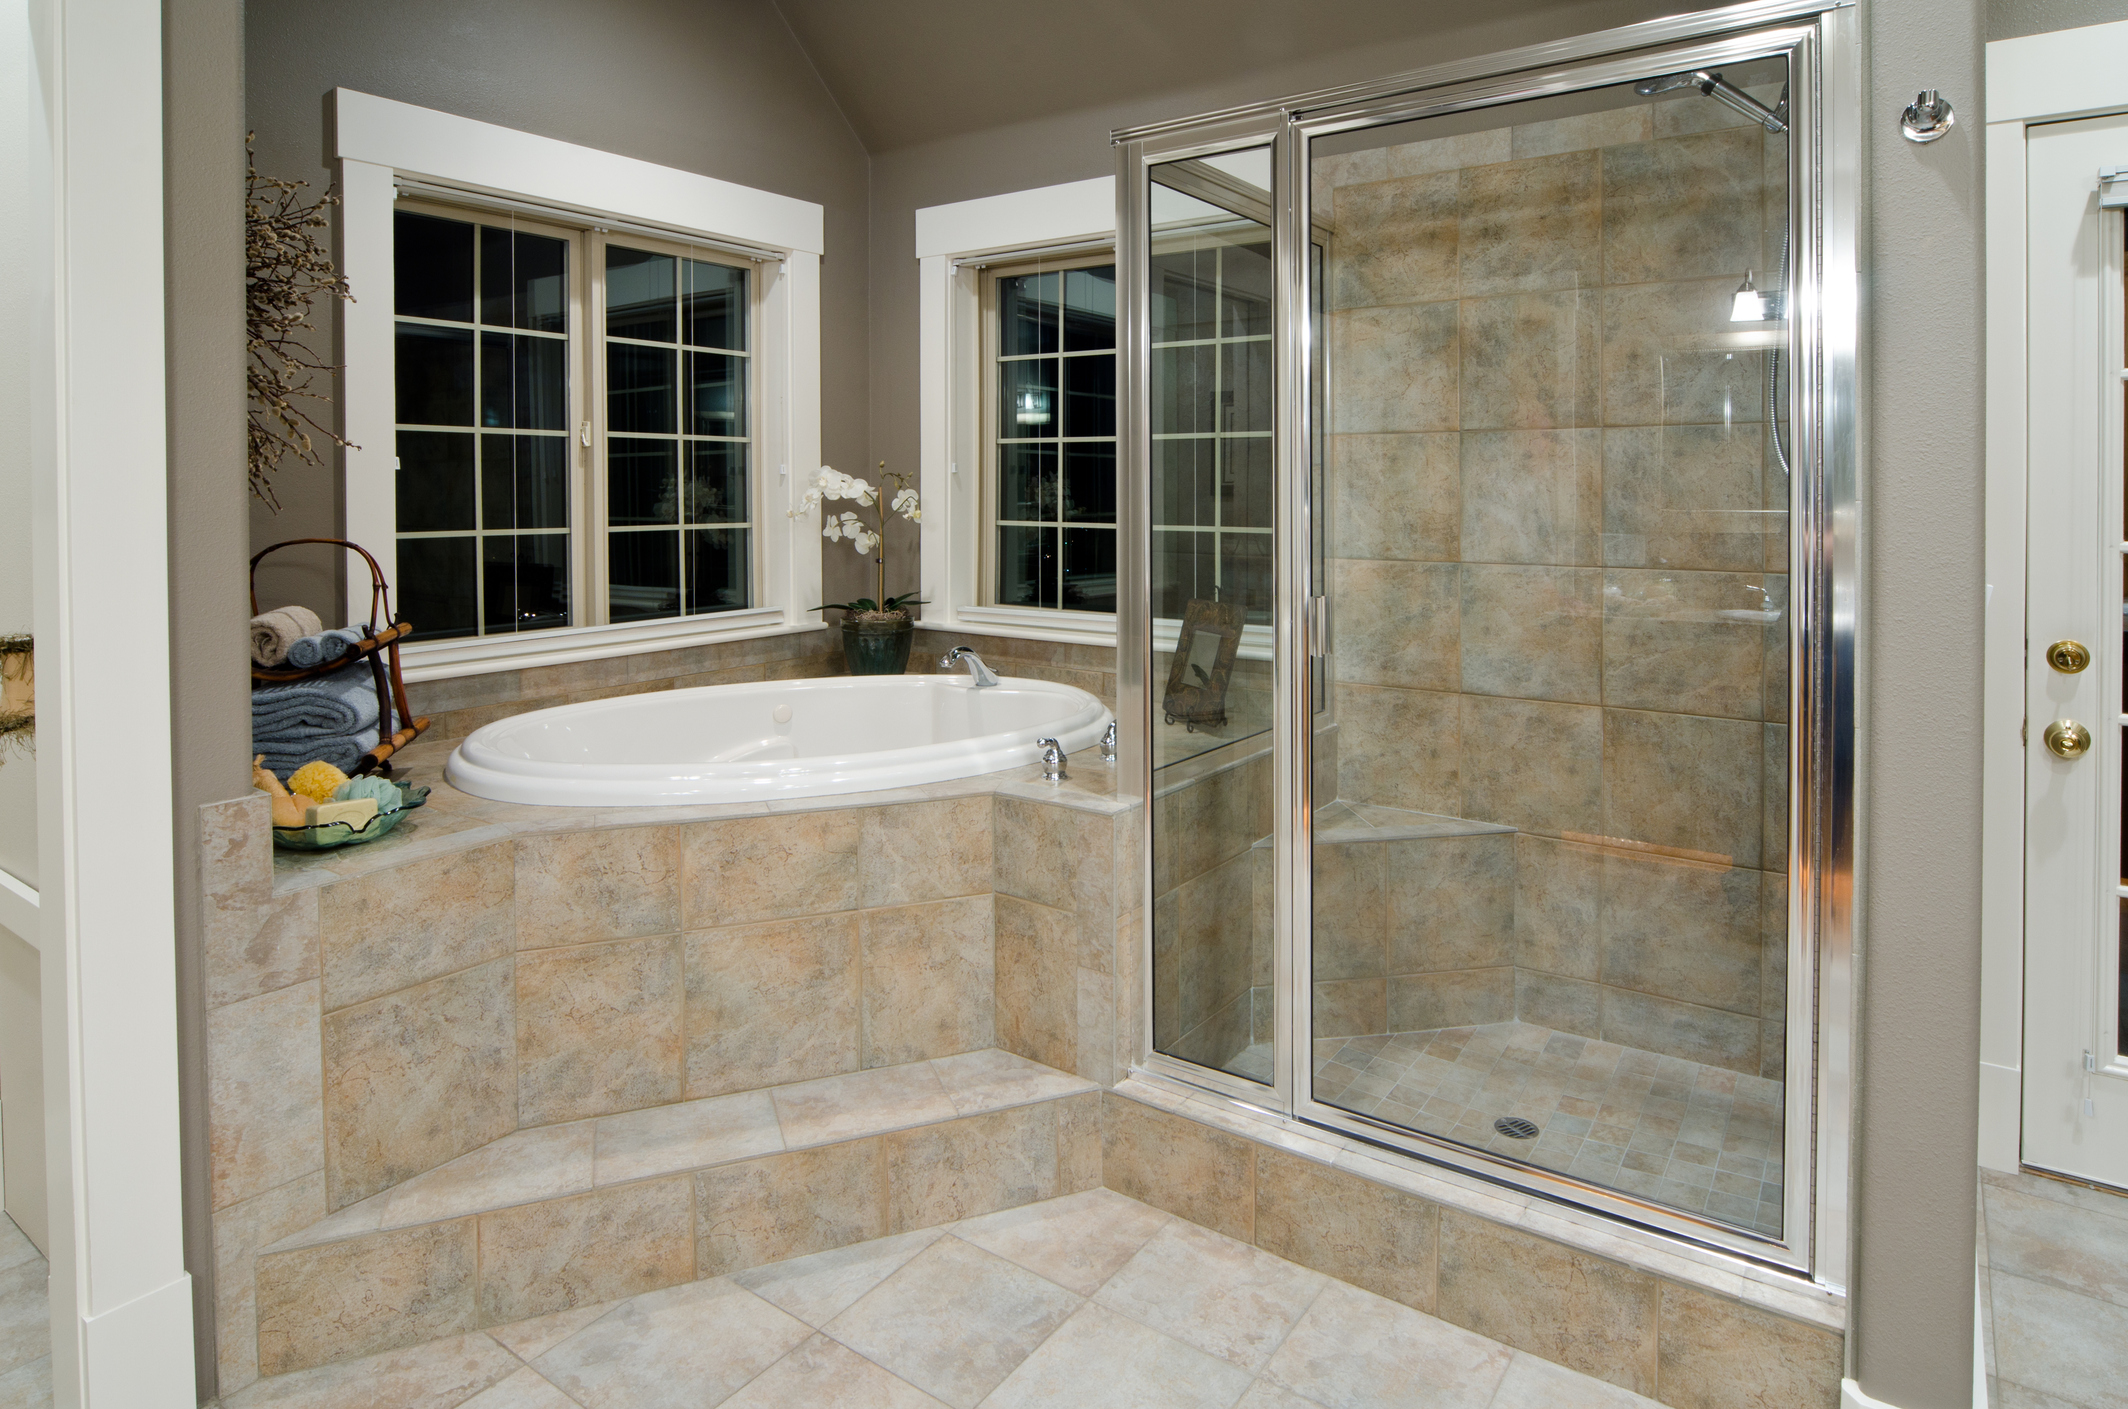 6 Types Of Shower Door And Glass Enclosures You Should Know